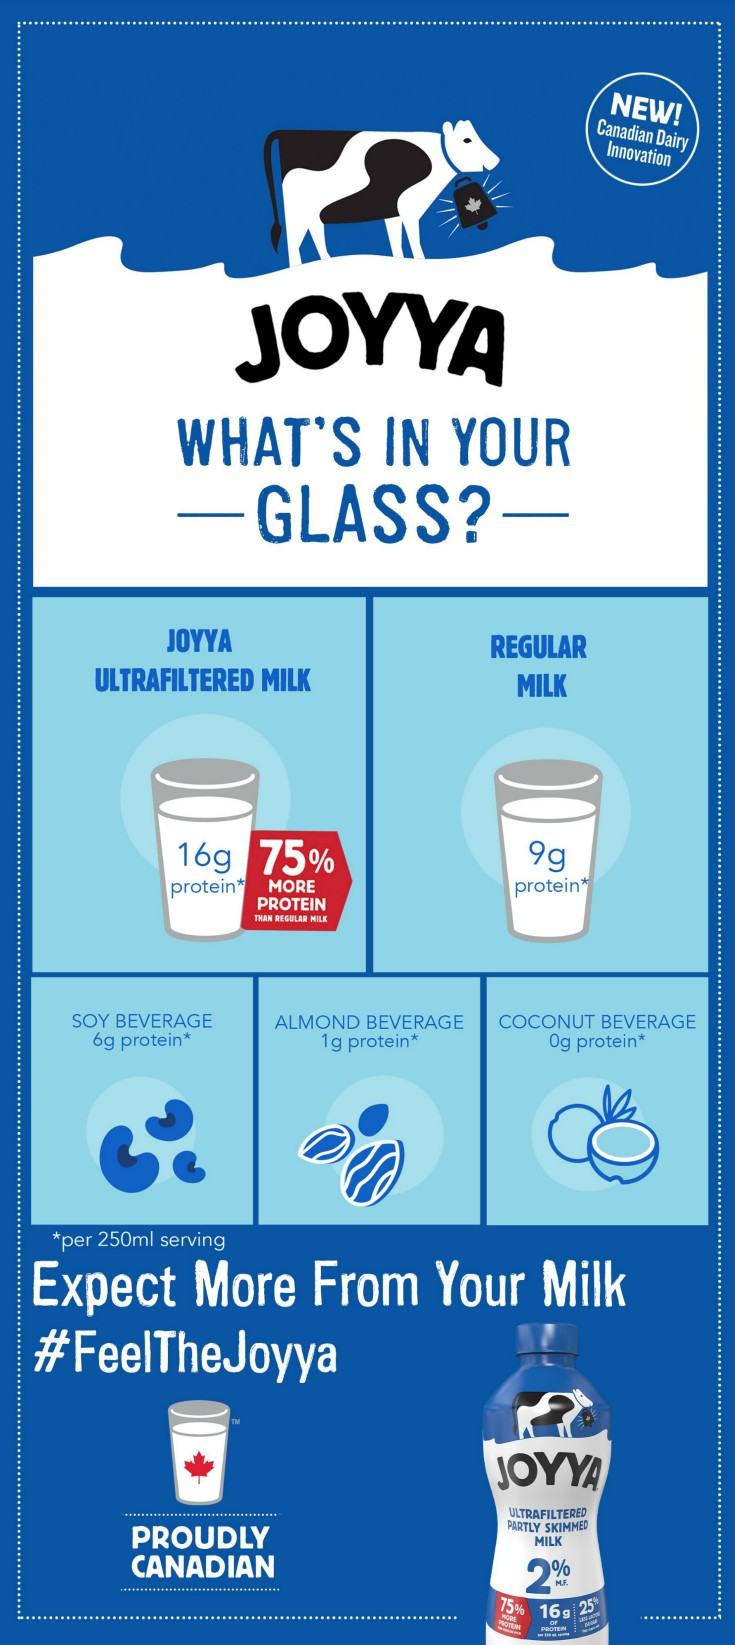 Joyya Milk Infographic - Compare Protein Content of Milk